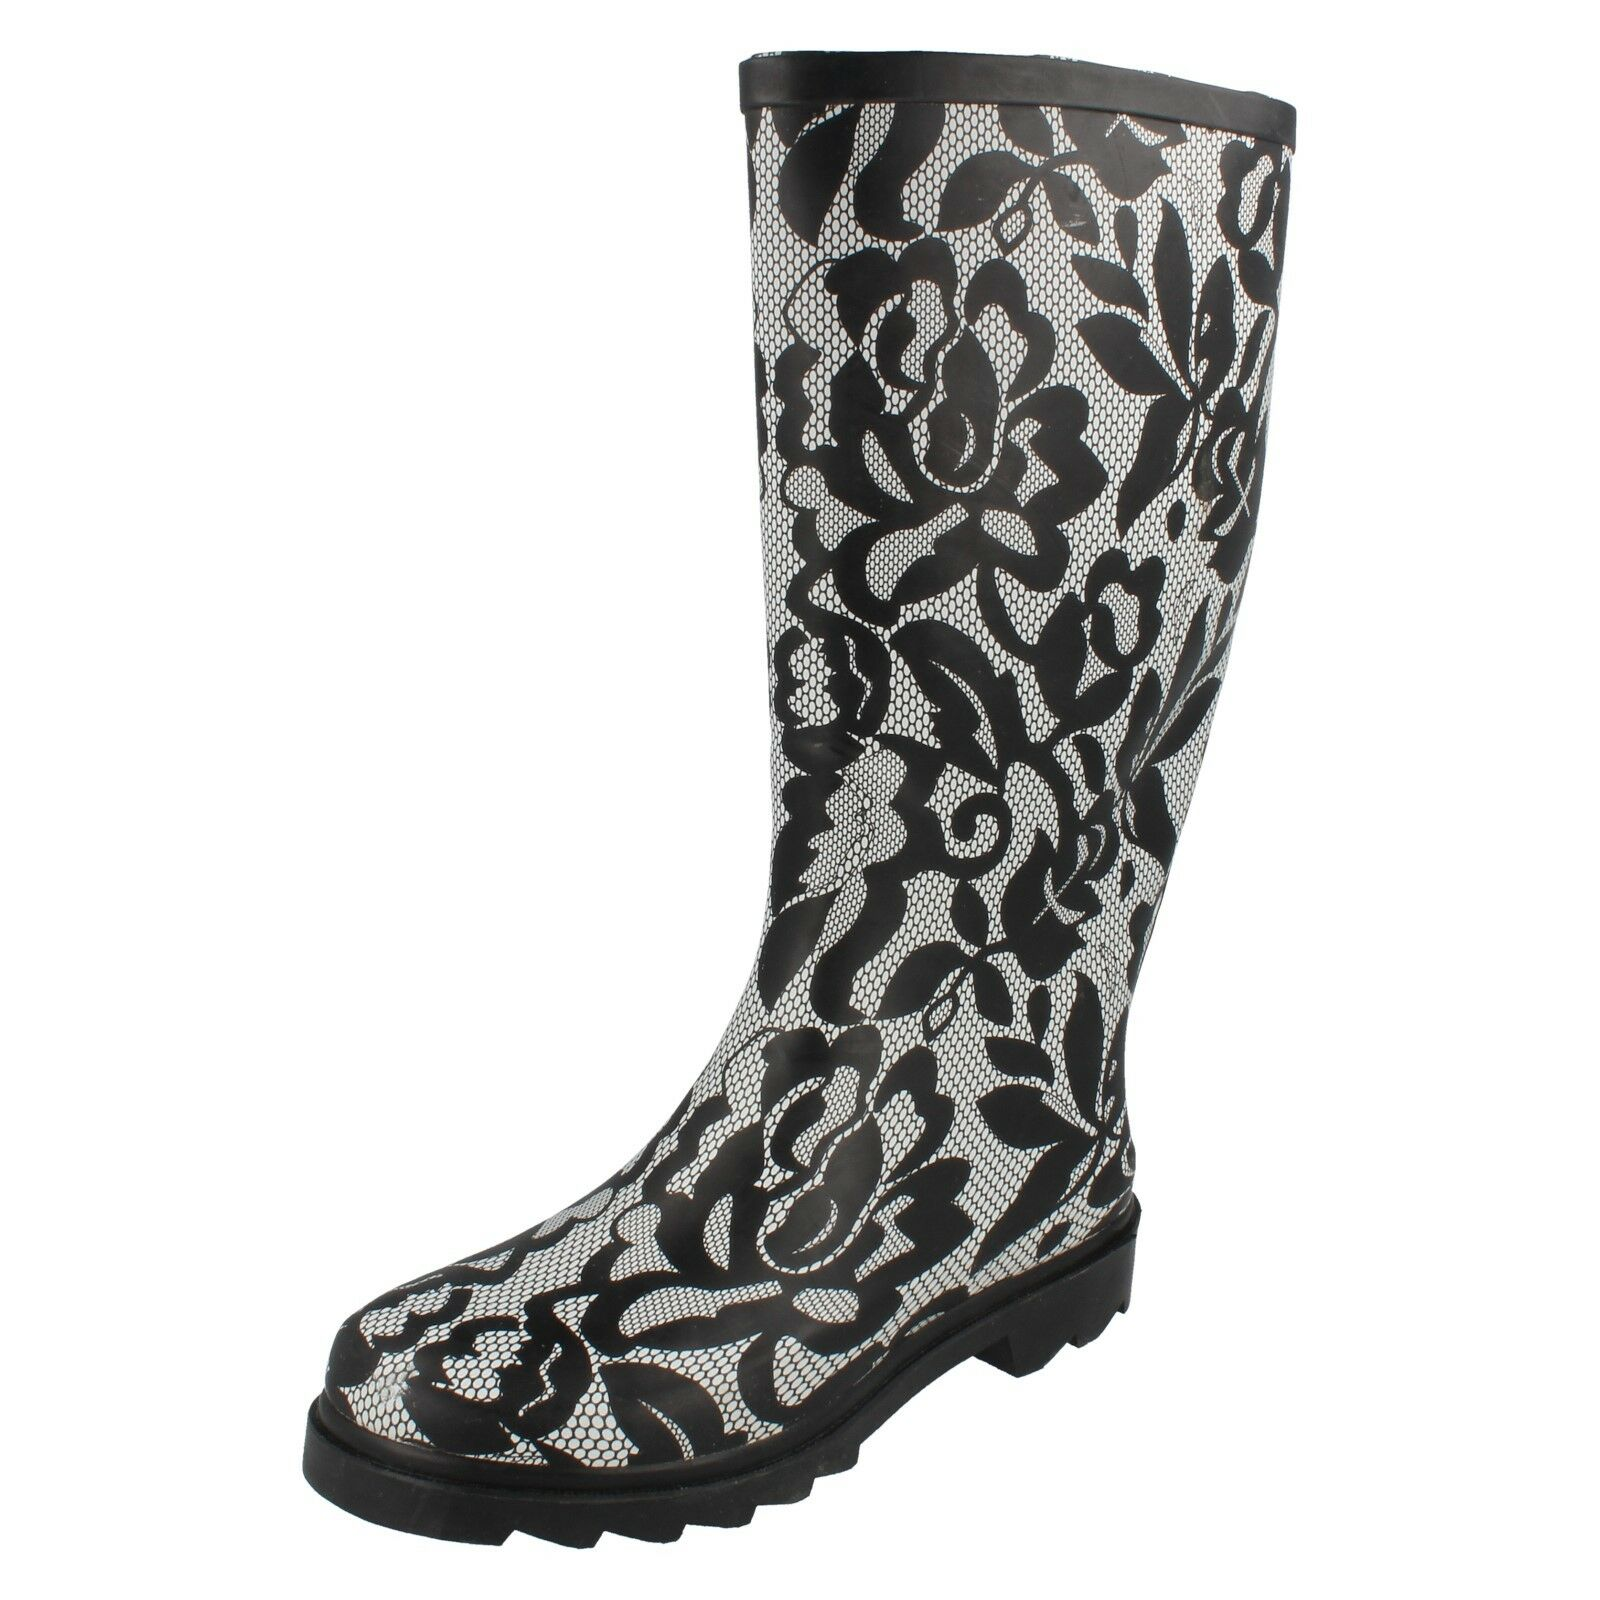 Ladies x1103 black and white rubber wellington boot By Spot On £19.99